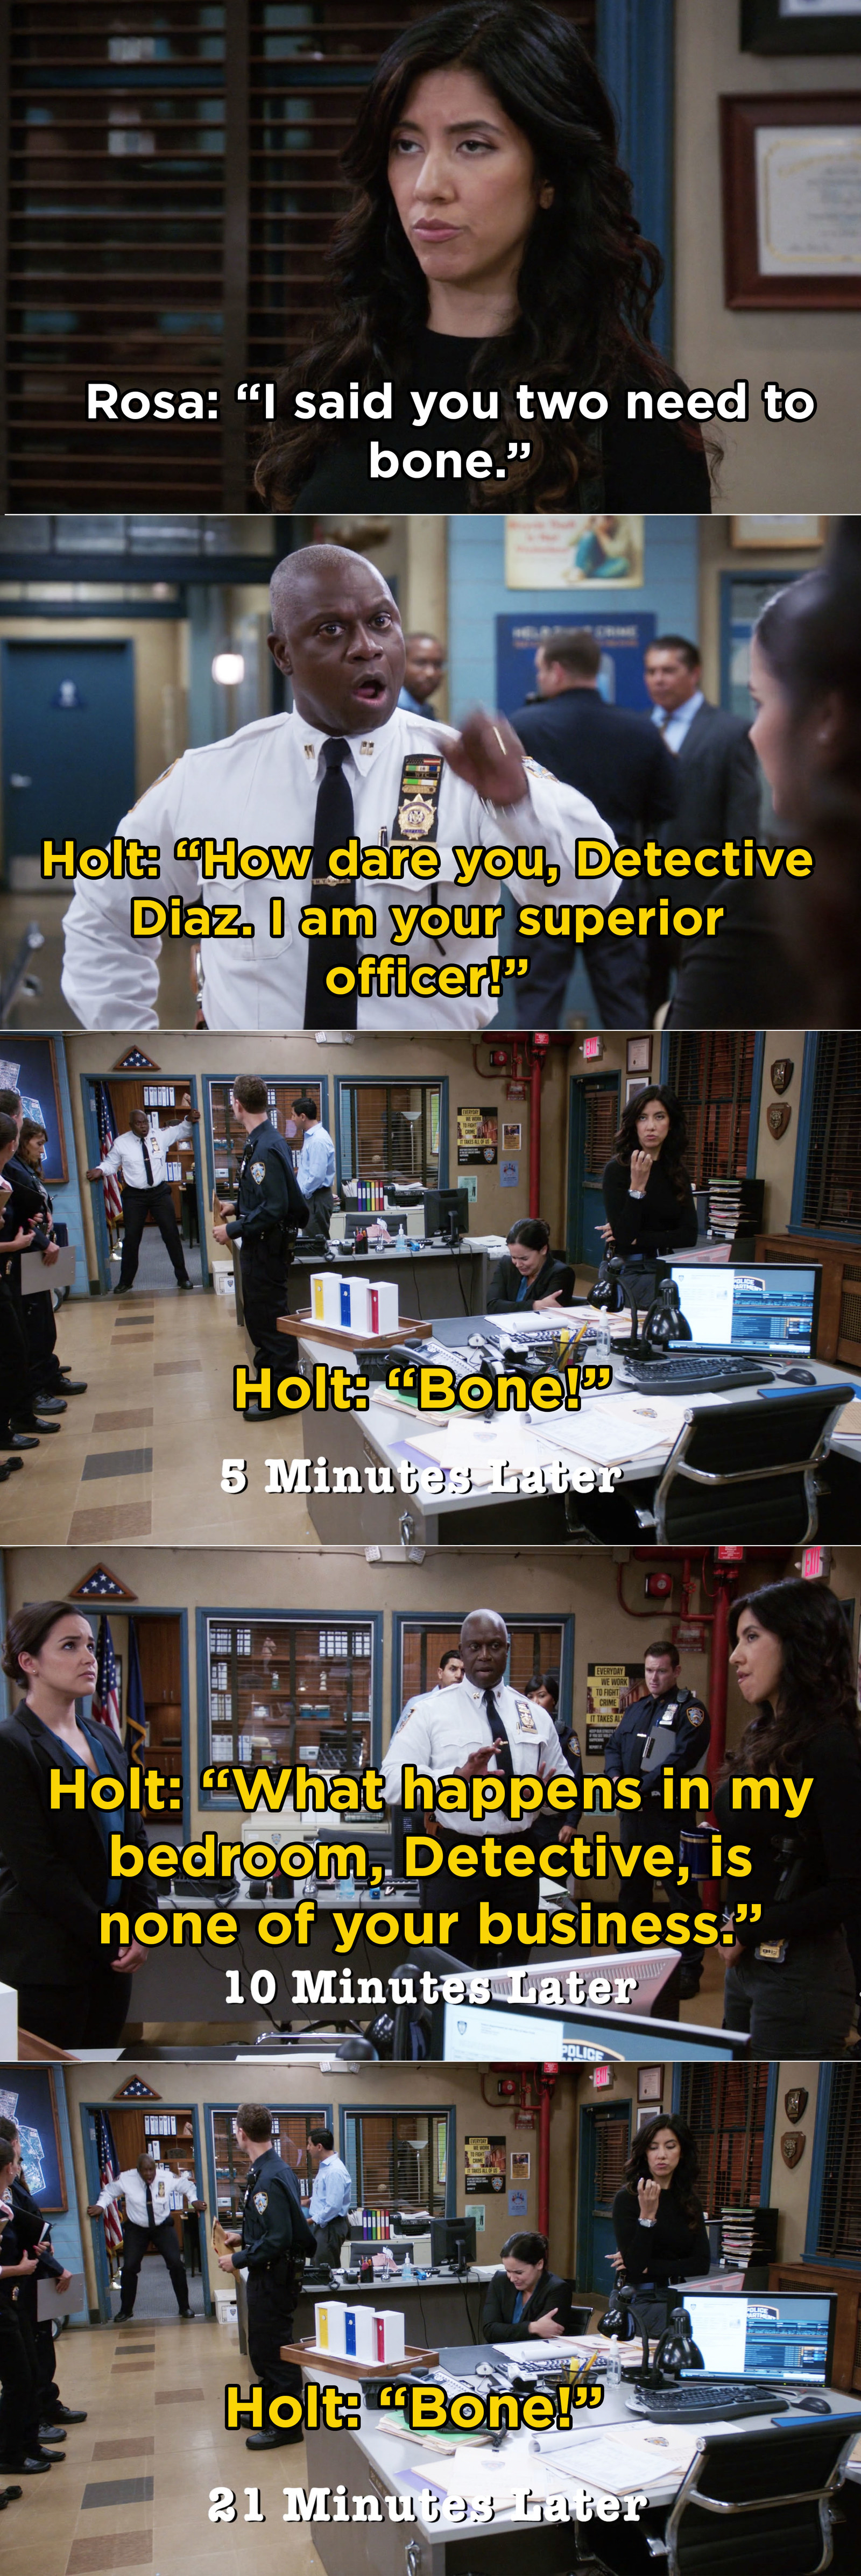 When Rosa hilariously suggested that Holt and his husband, Kevin, should ~bone~